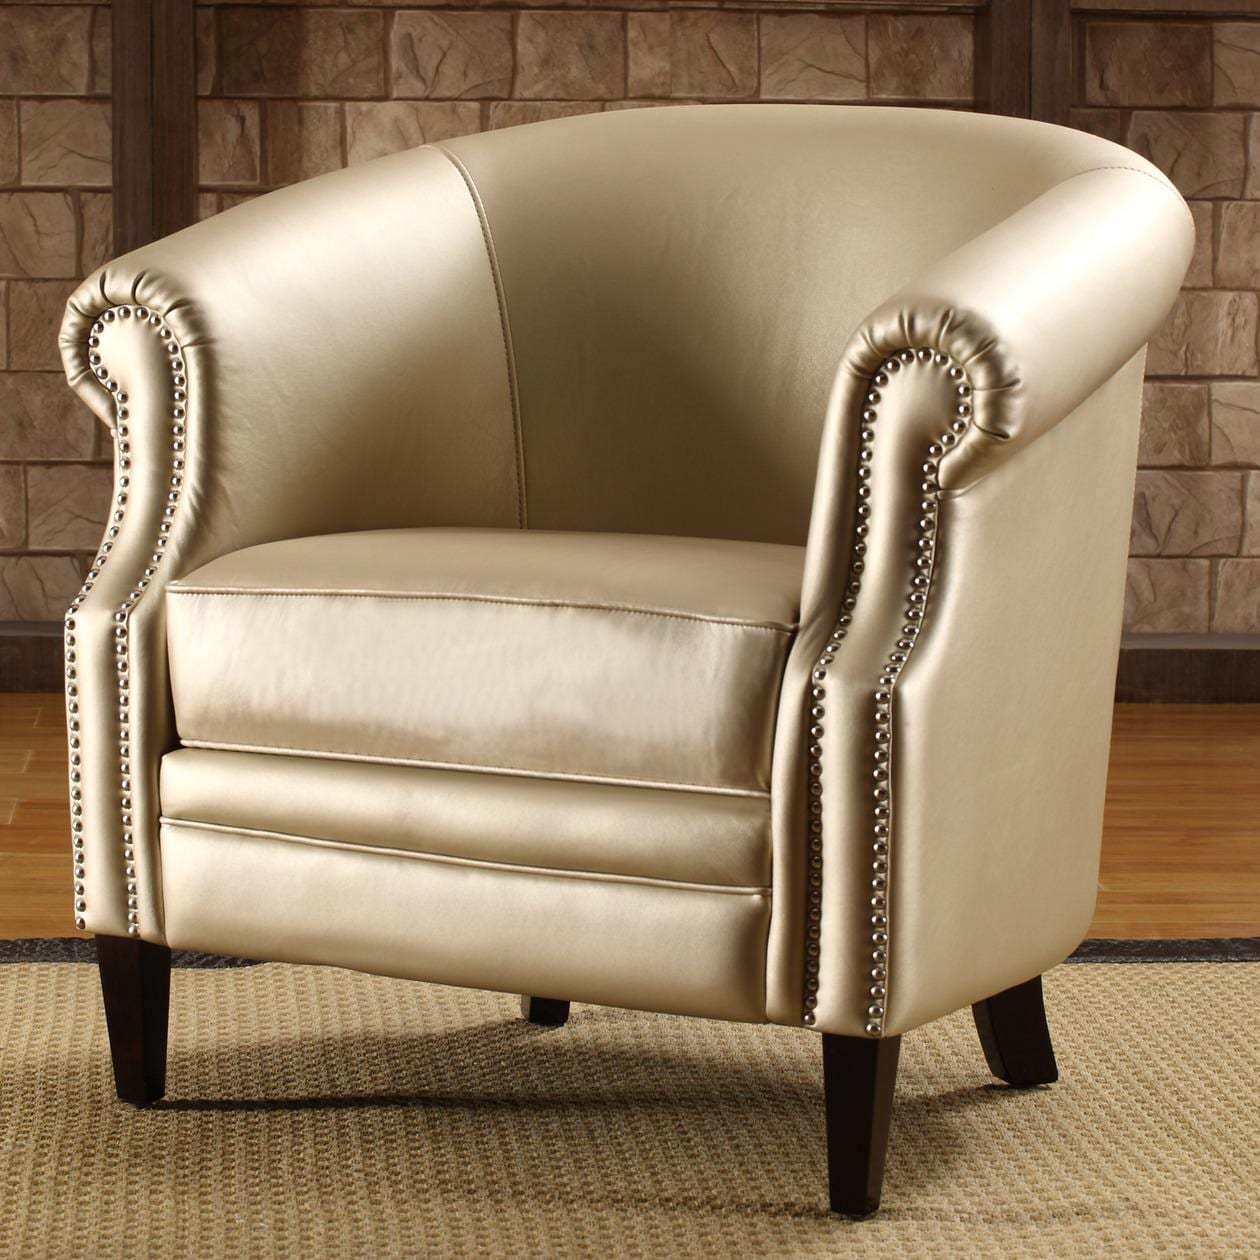 Trenton Gold Metallic Accent Arm Chair 13510866